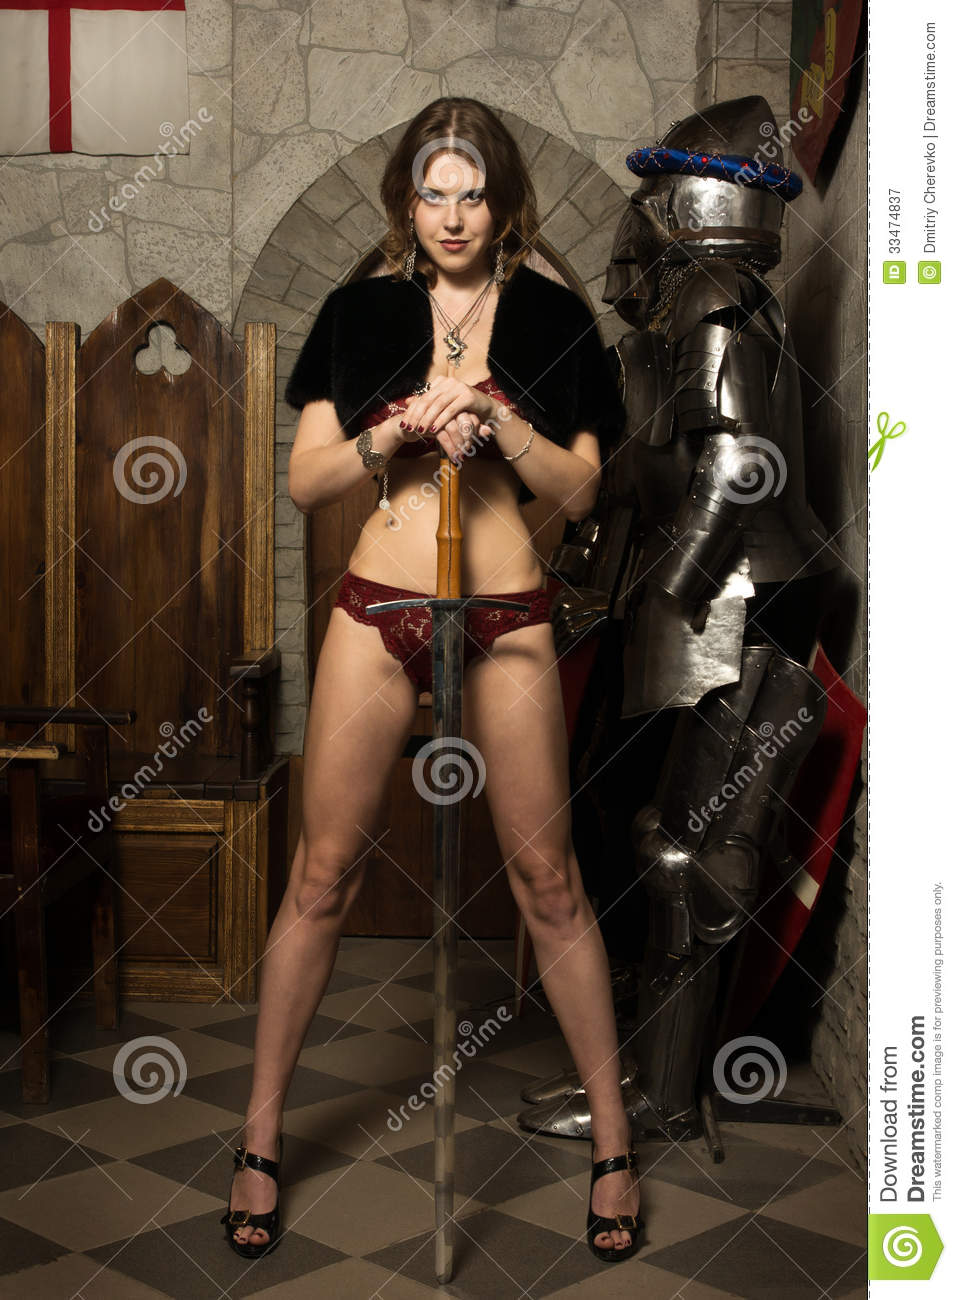 Medieval hot girl sexy pictures